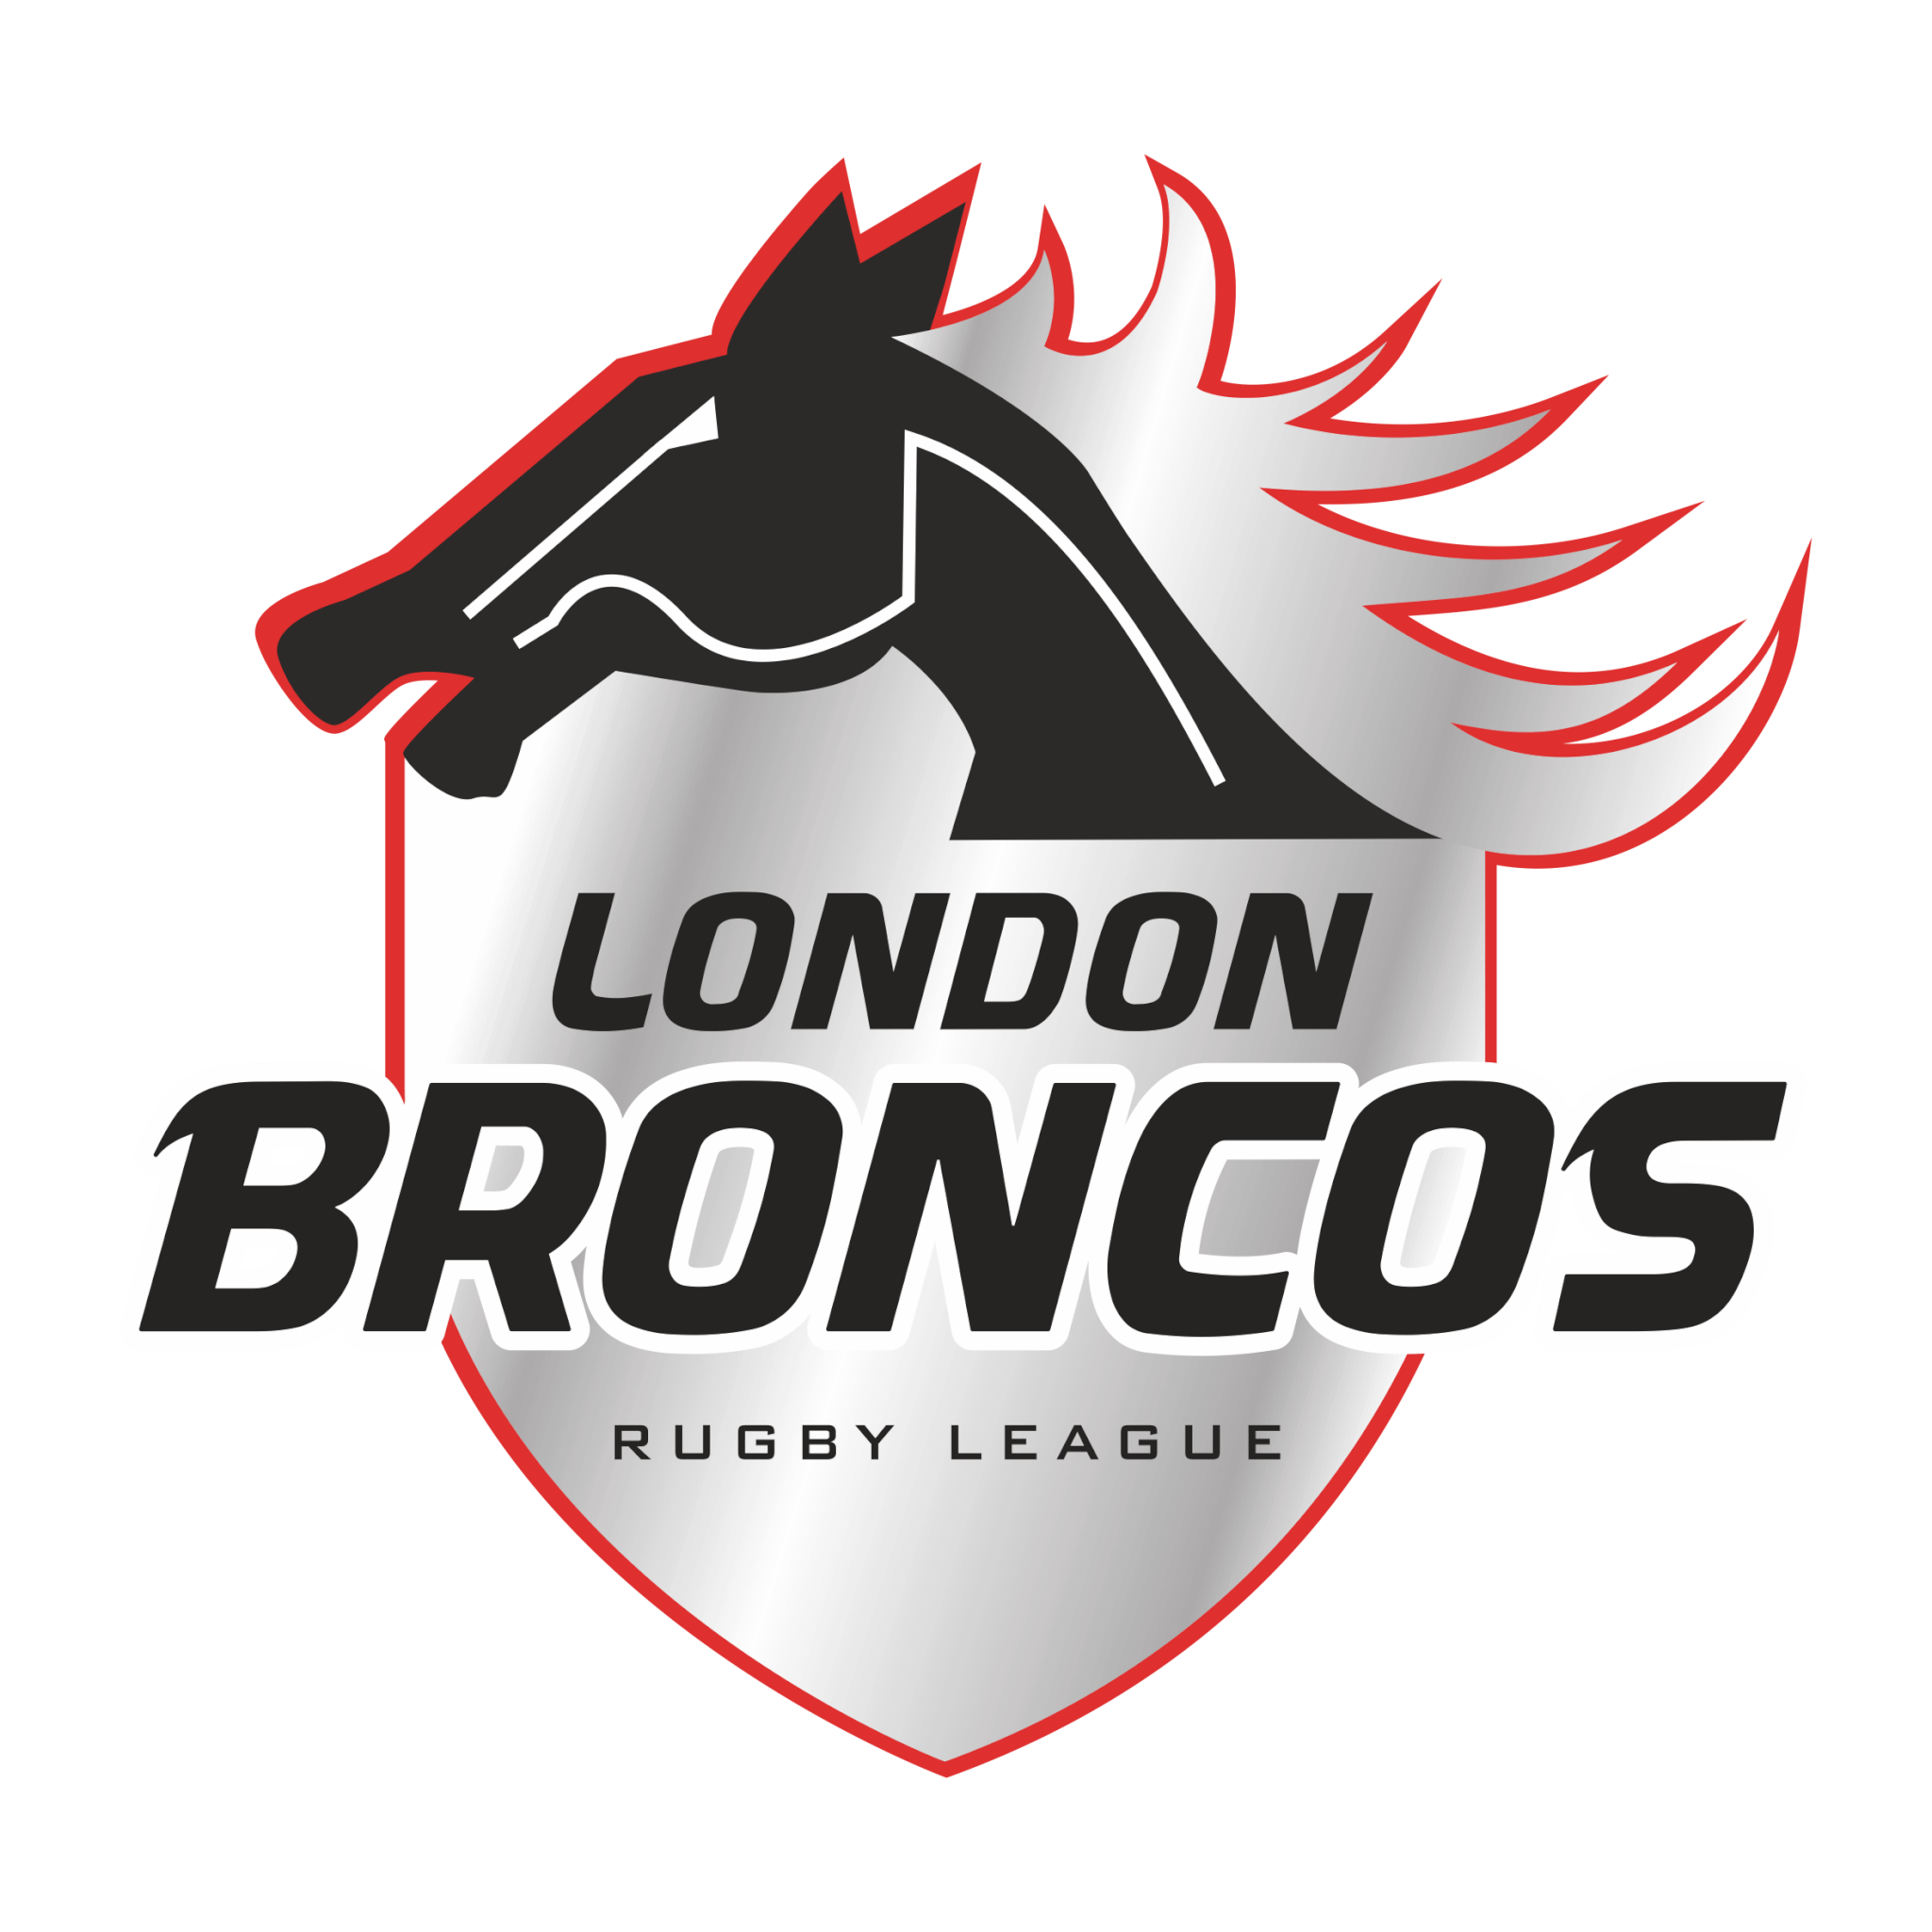 London Broncos RL